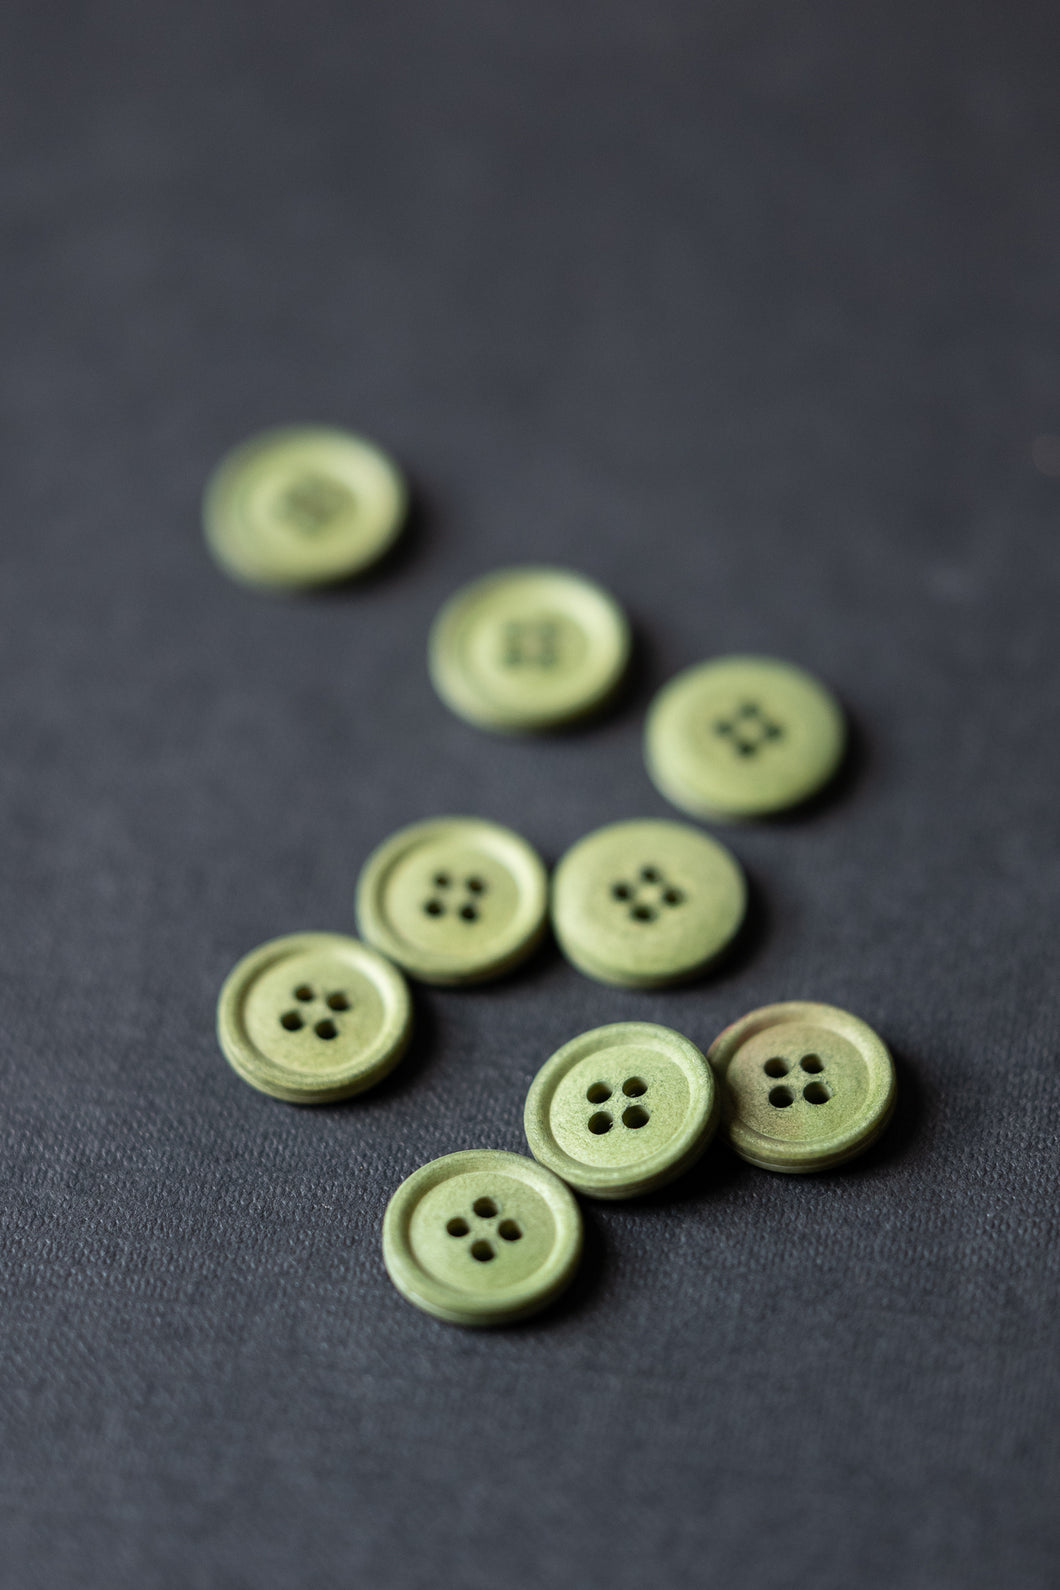 Bowling Green 15mm Cotton Button - Merchant and Mills